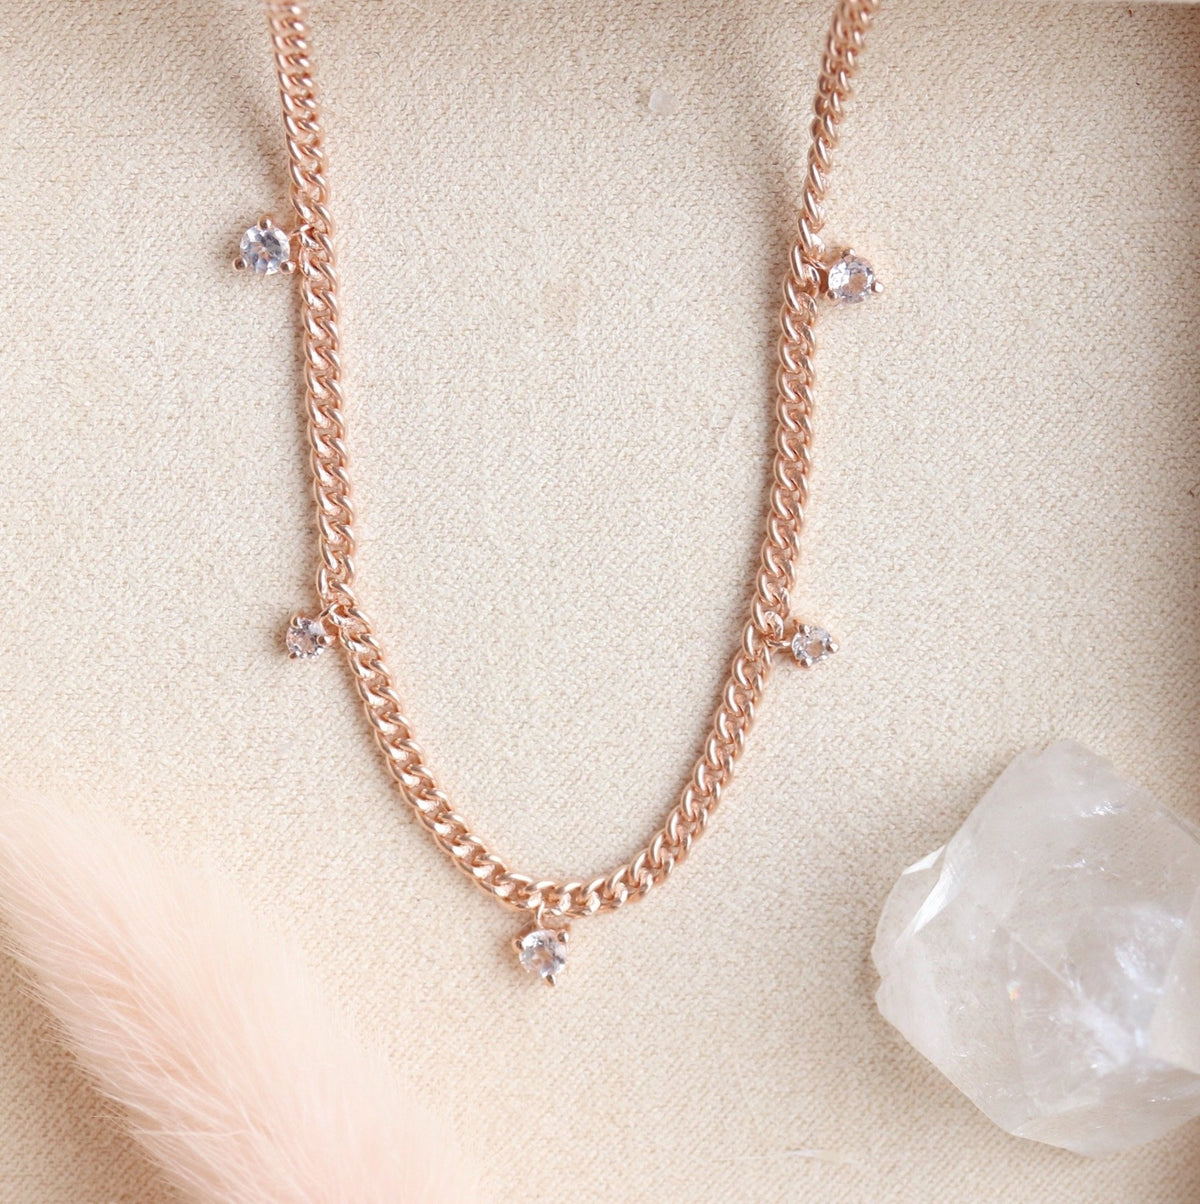 UNITY CROWN CURB LINK NECKLACE - WHITE TOPAZ & ROSE GOLD - SO PRETTY CARA COTTER